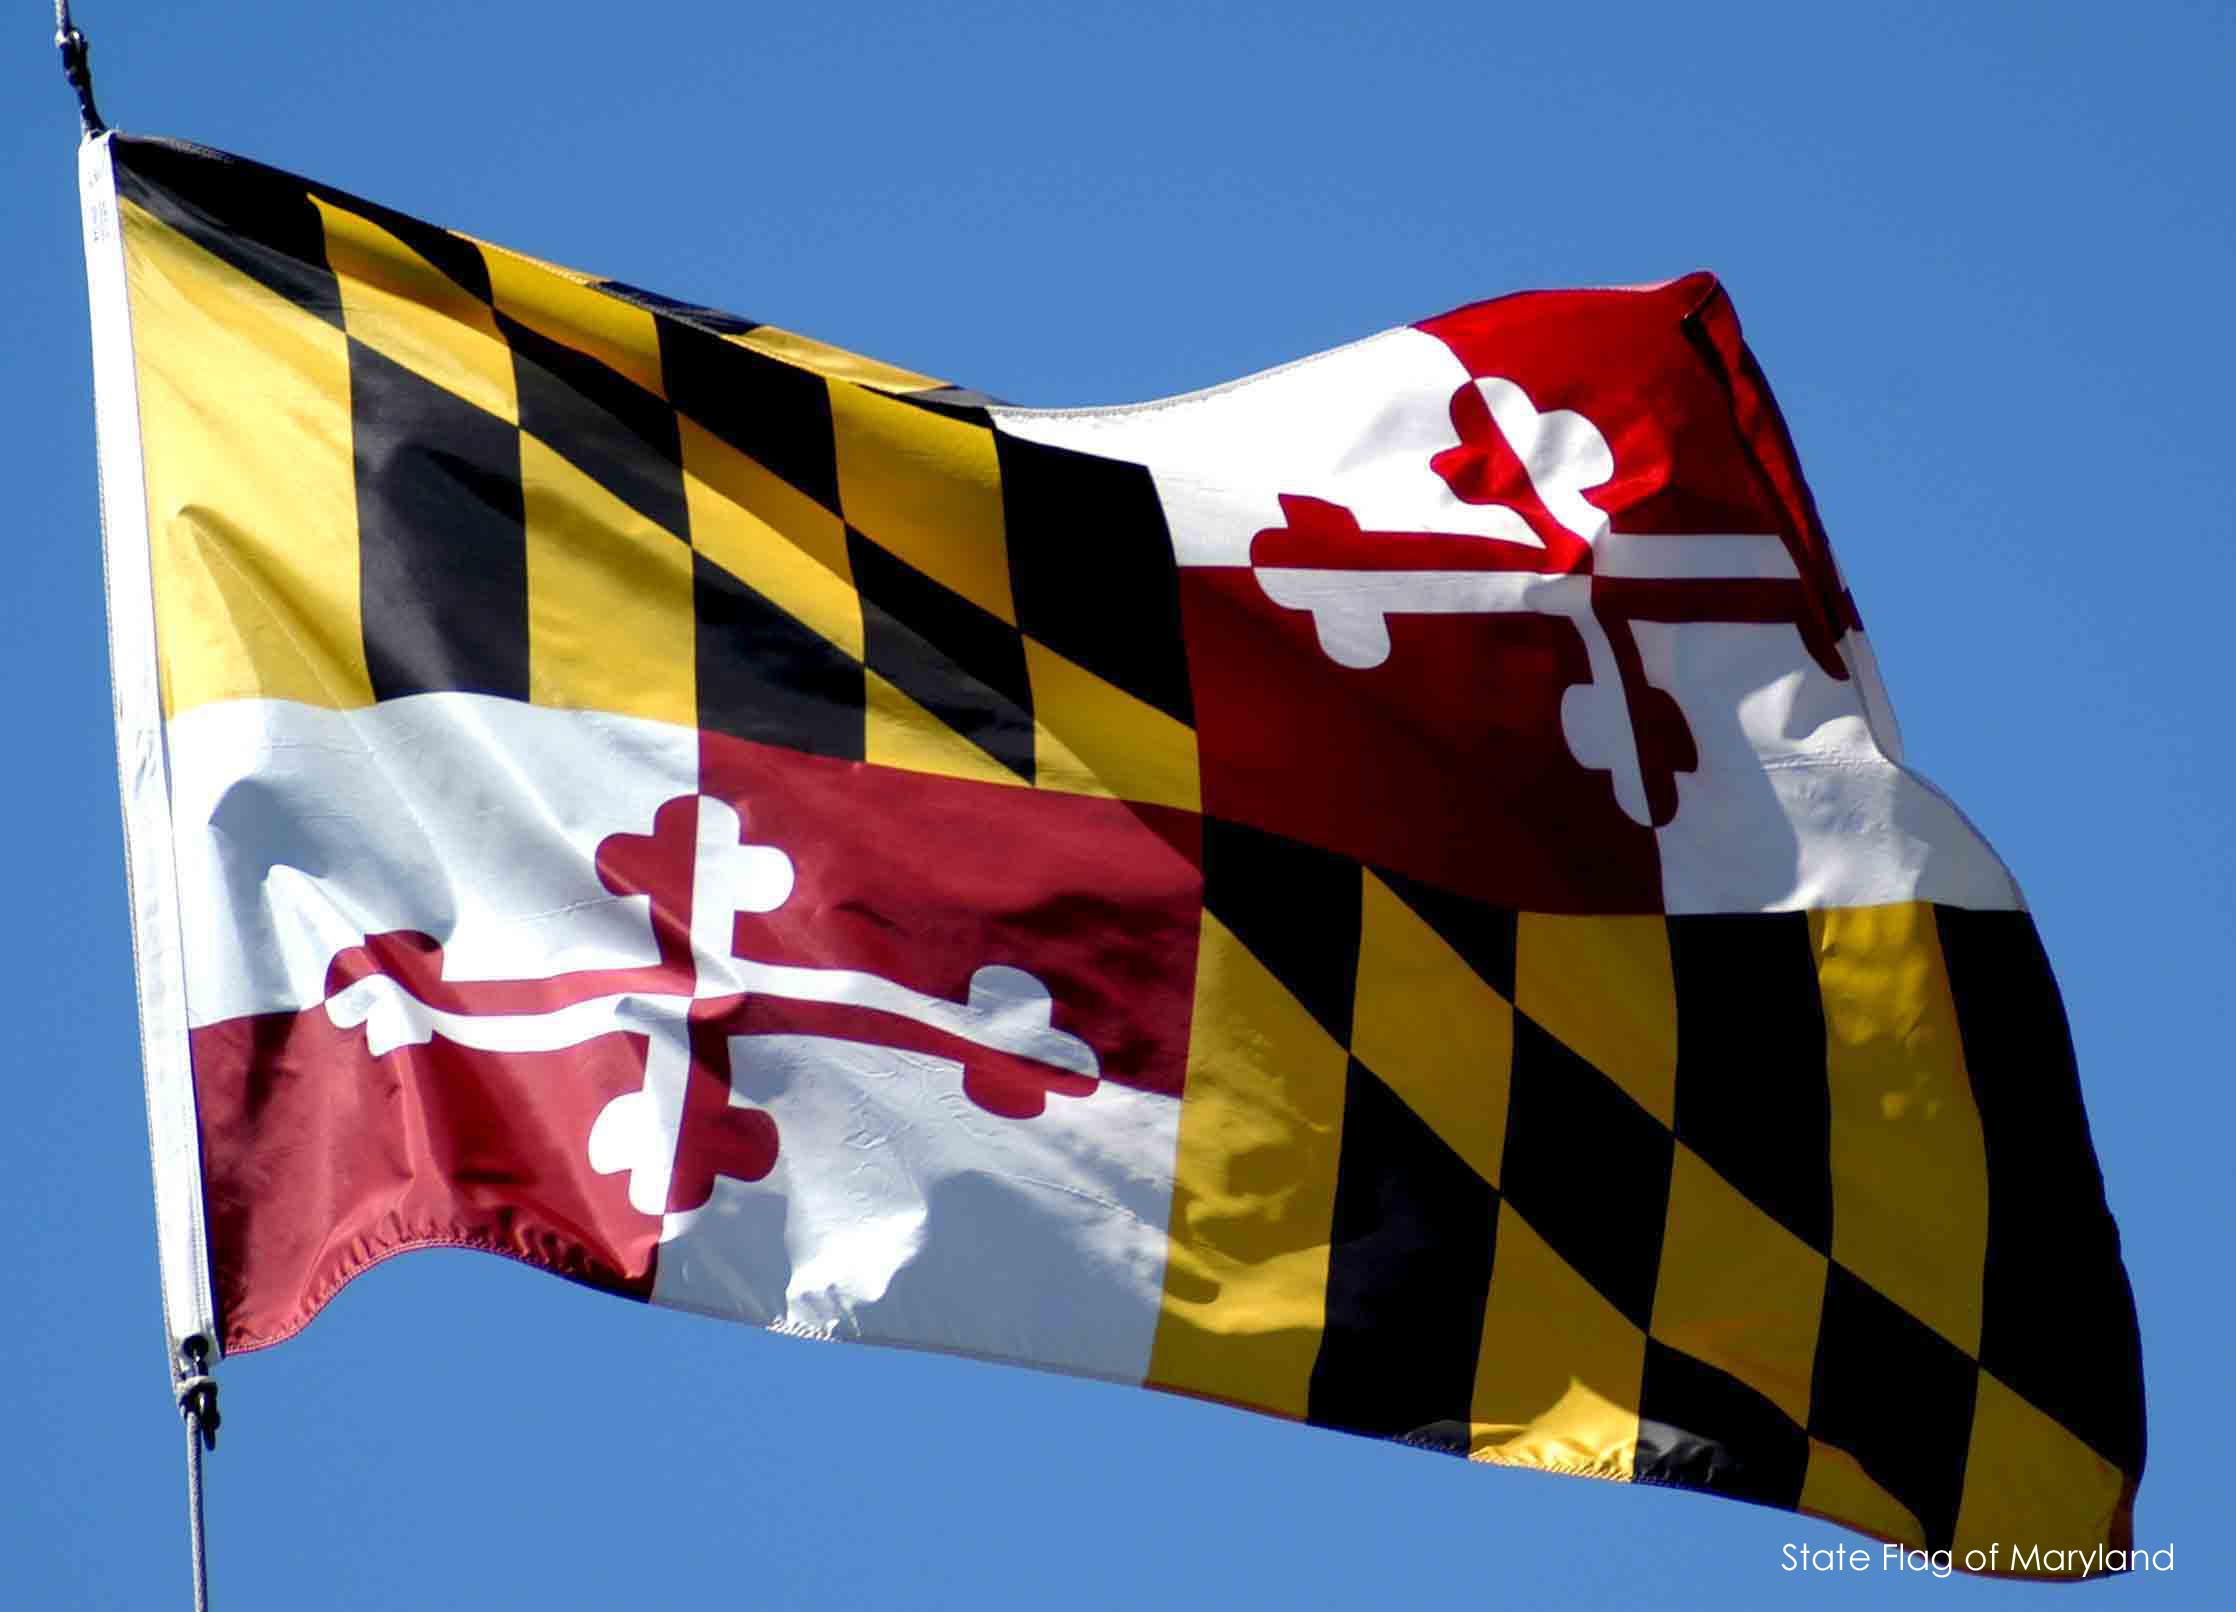 http://msa.maryland.gov/megafile/msa/stagsere/se1/se14/000000/000034/jpg/maryland_flag1.jpe